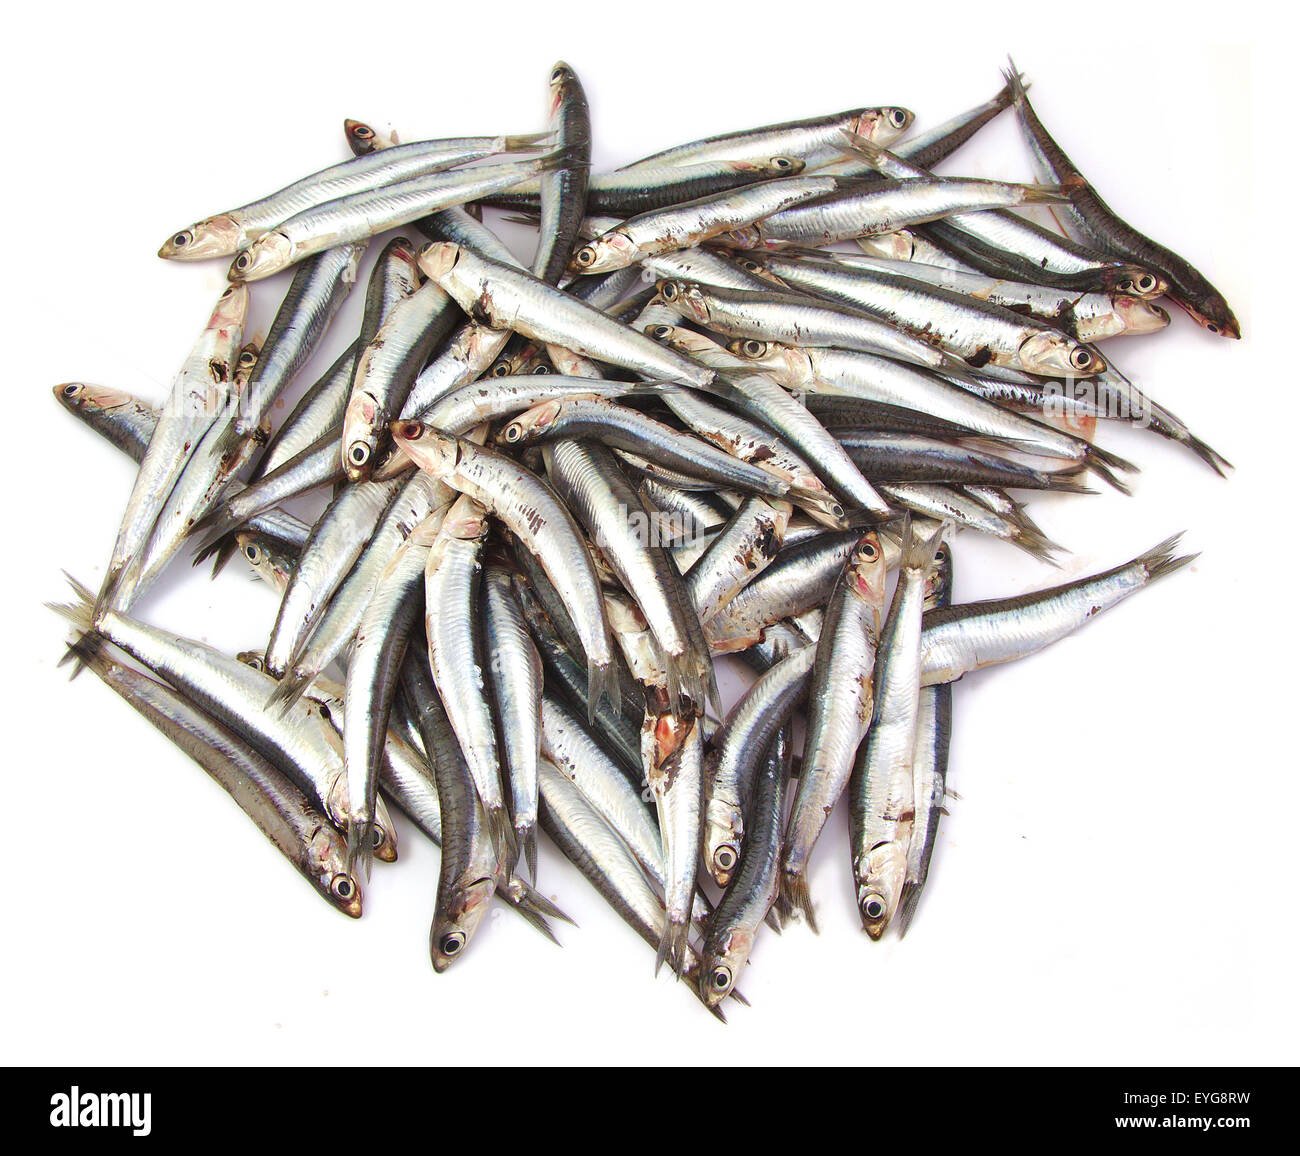 Bunch of anchovies on white background Stock Photo